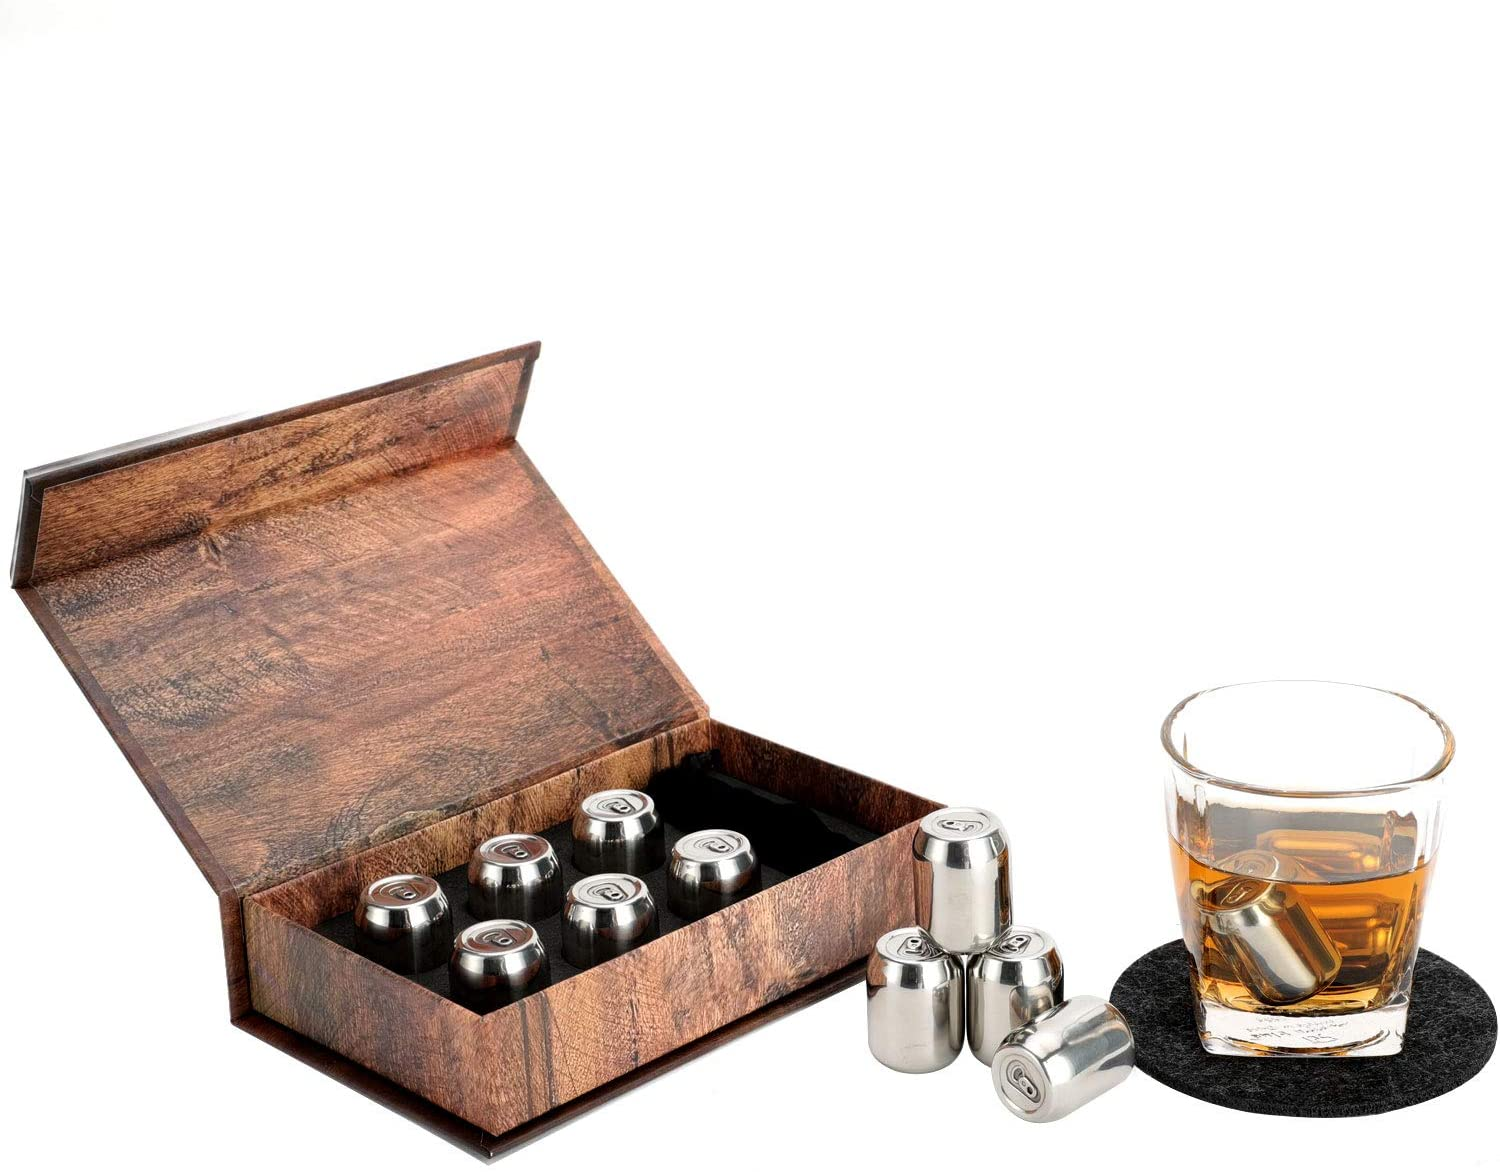 Stainless Steel Ice Cubes for Whiskey, Reusable Chilling Stone Freezer, 6pcs a Set with a Storage Bag